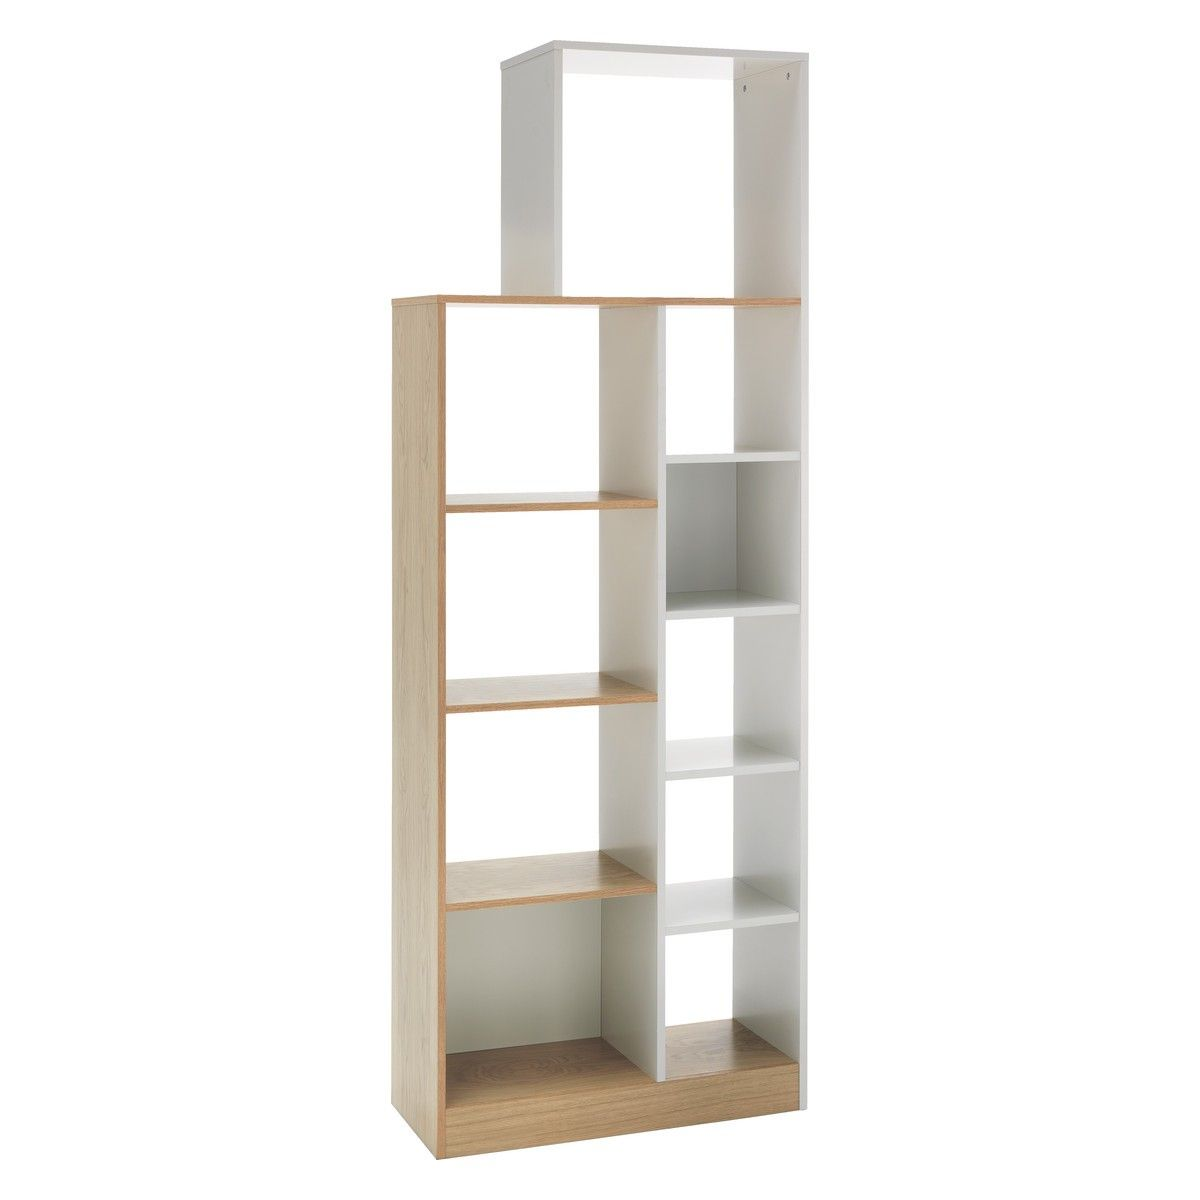 MILES Oak And Linen White Tall Shelving Unit Living Room Bookcase